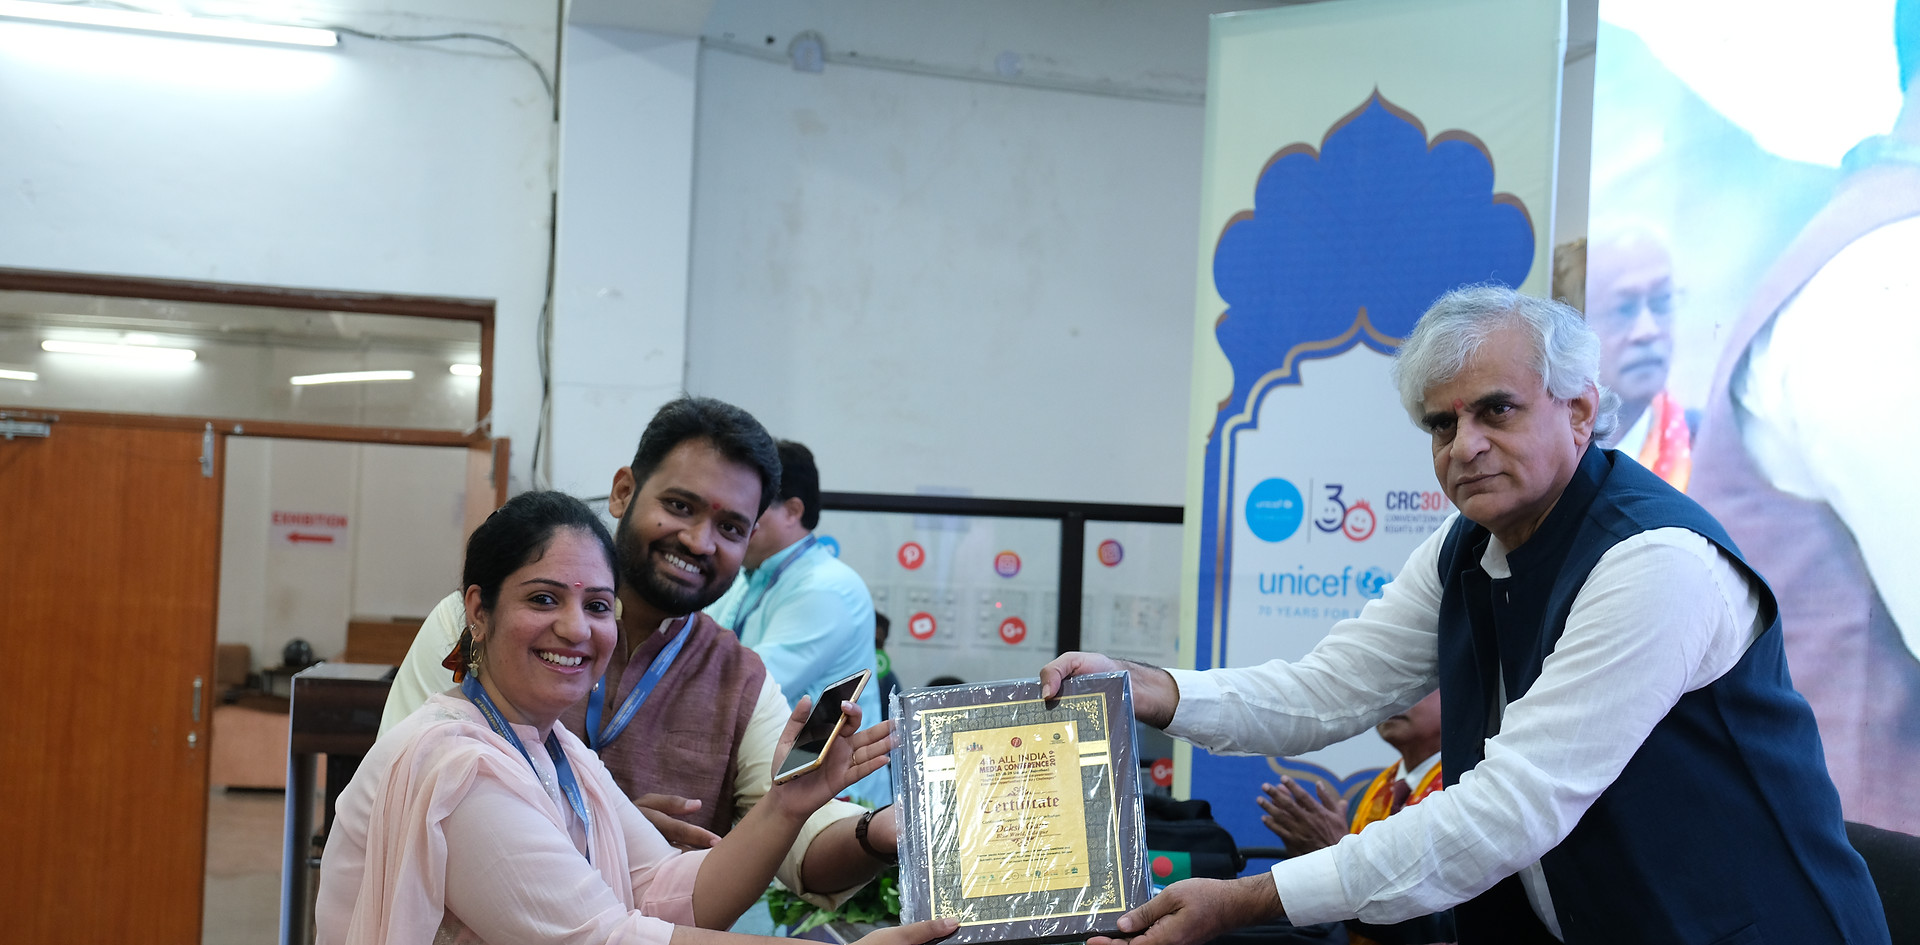 Mr. P. Sainath - Founder &  Editor of the People's Archive of Rural India honoring Mr. Daksh Gaur, Founder, Blub World, and Mrs. Aditi Gaur, Editor, Blub World at the 4th All India Media Conference held in Udaipur from September 27- 29, 2019